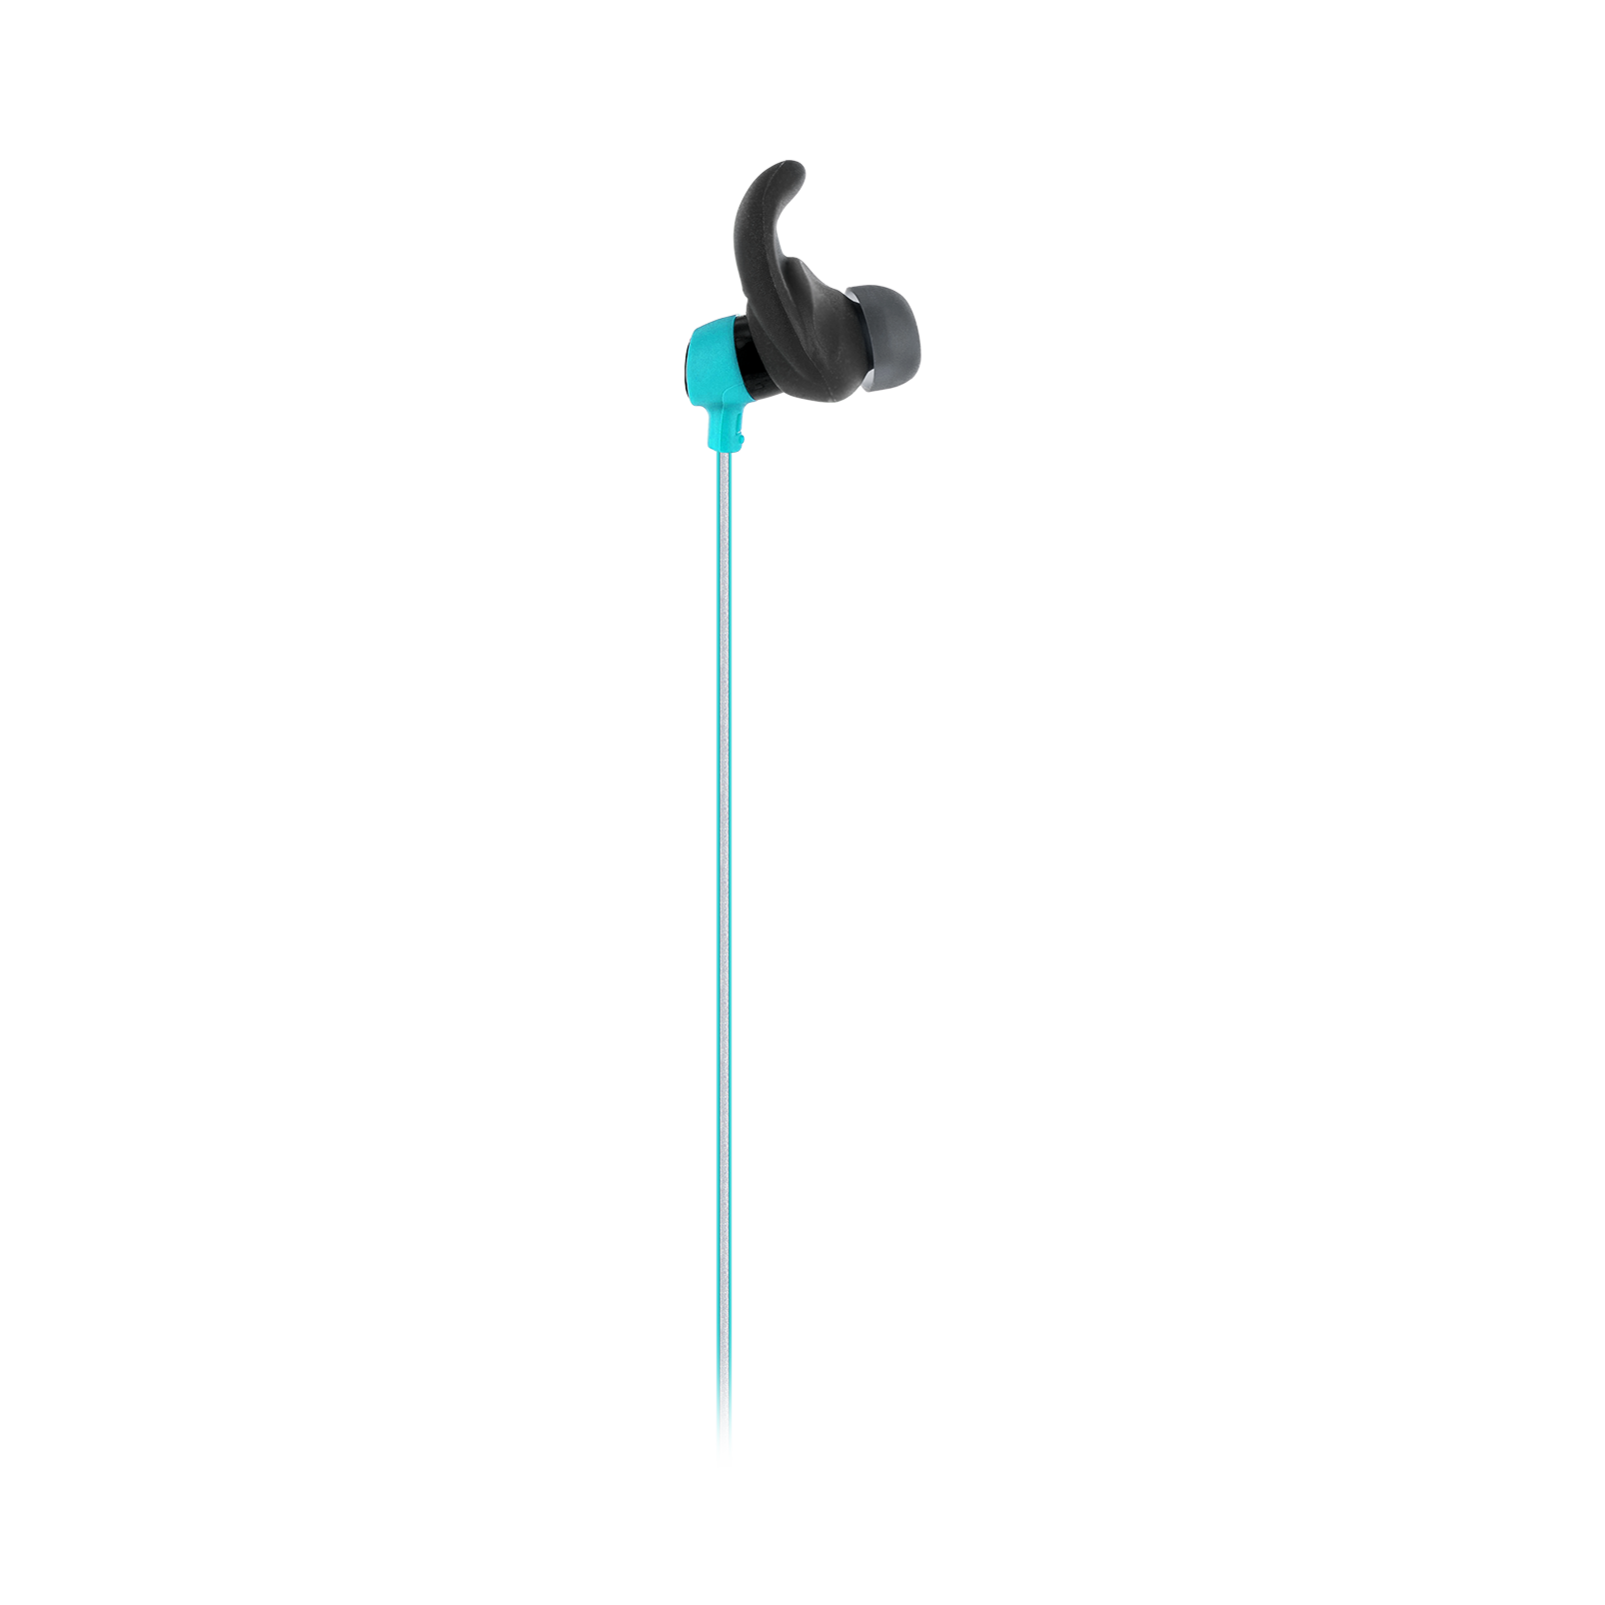 Reflect Mini - Teal - Lightweight, in-ear sport headphones - Detailshot 8